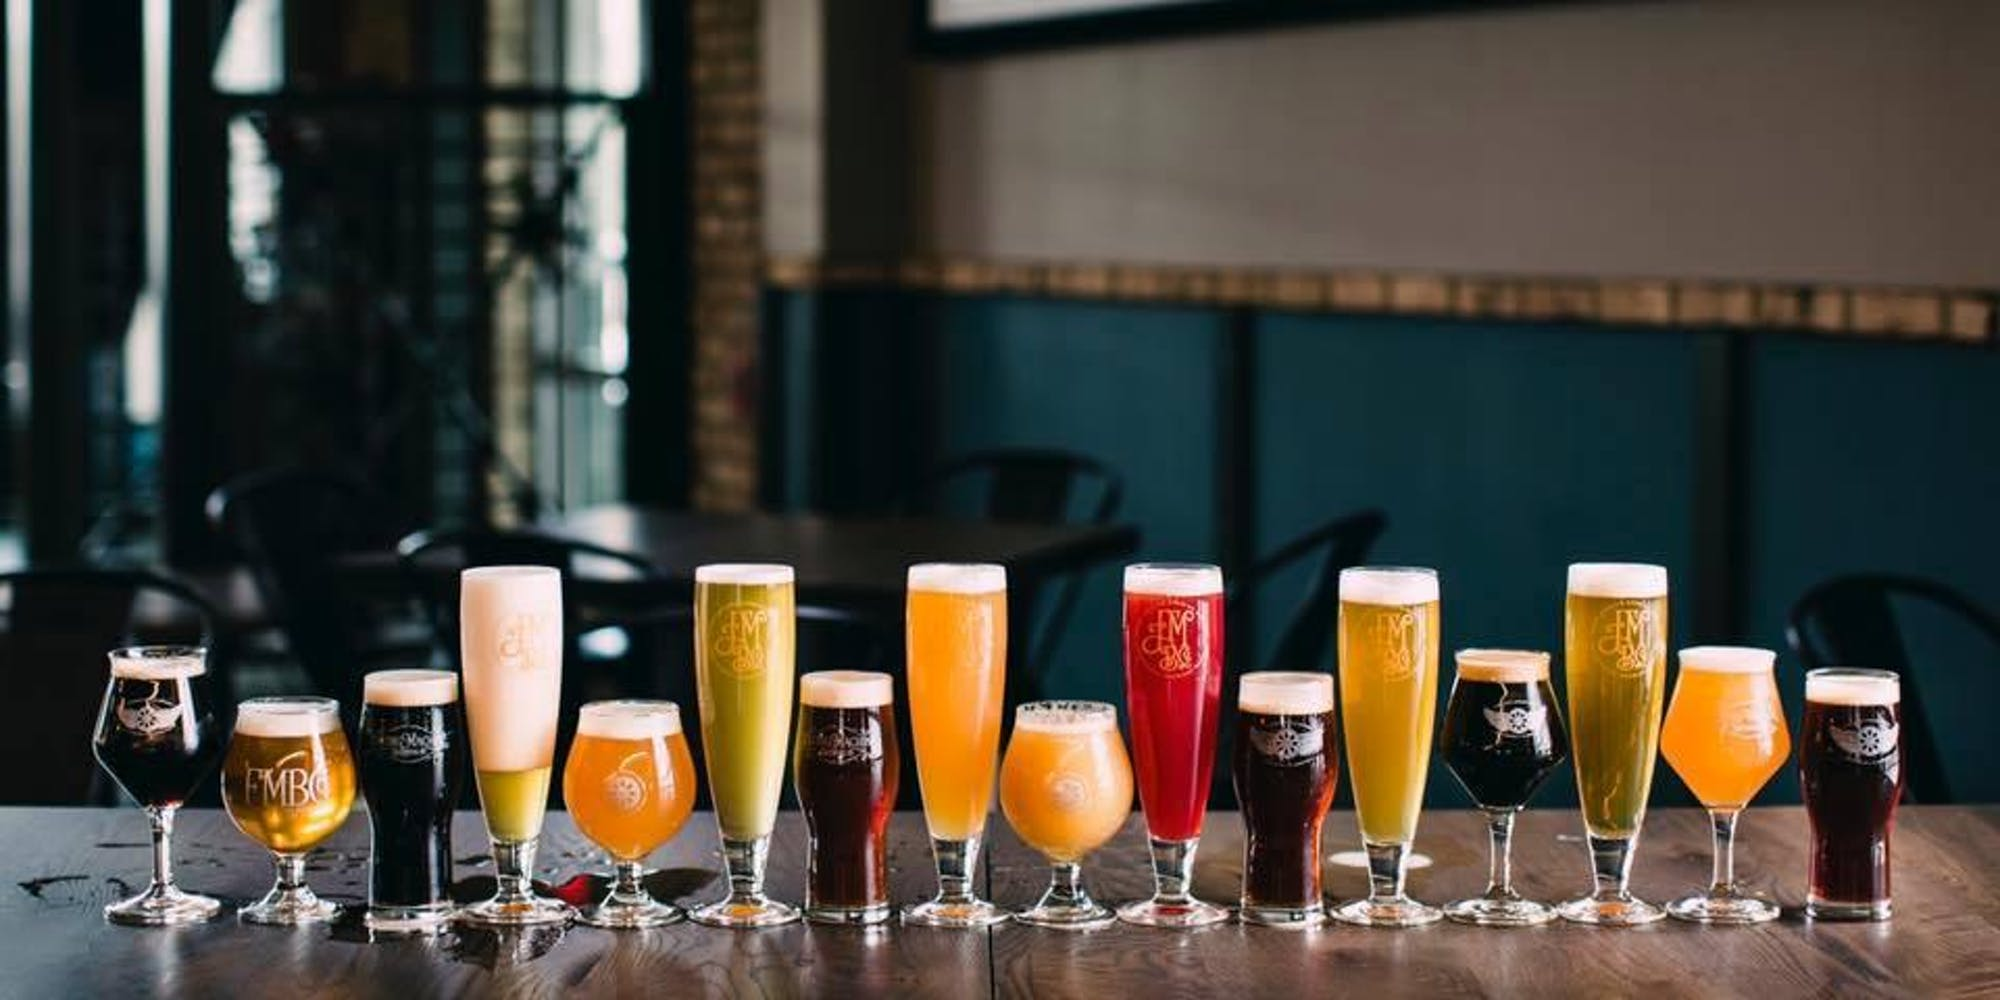 Best Beers Of 2019 & What's In Store For 2020